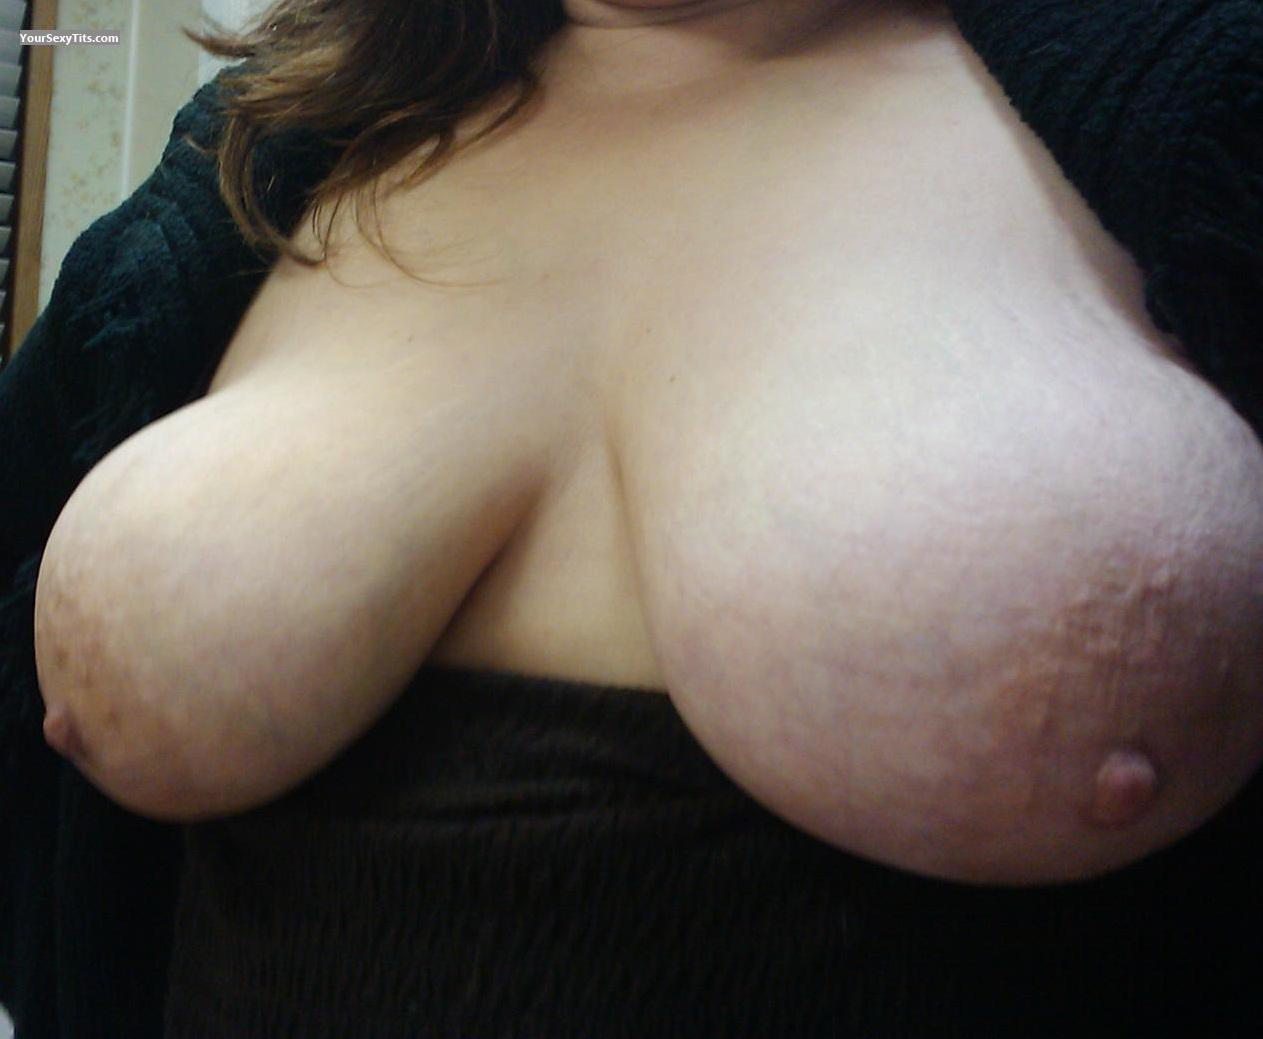 Tit Flash: My Very Big Tits (Selfie) - Catzass from United States